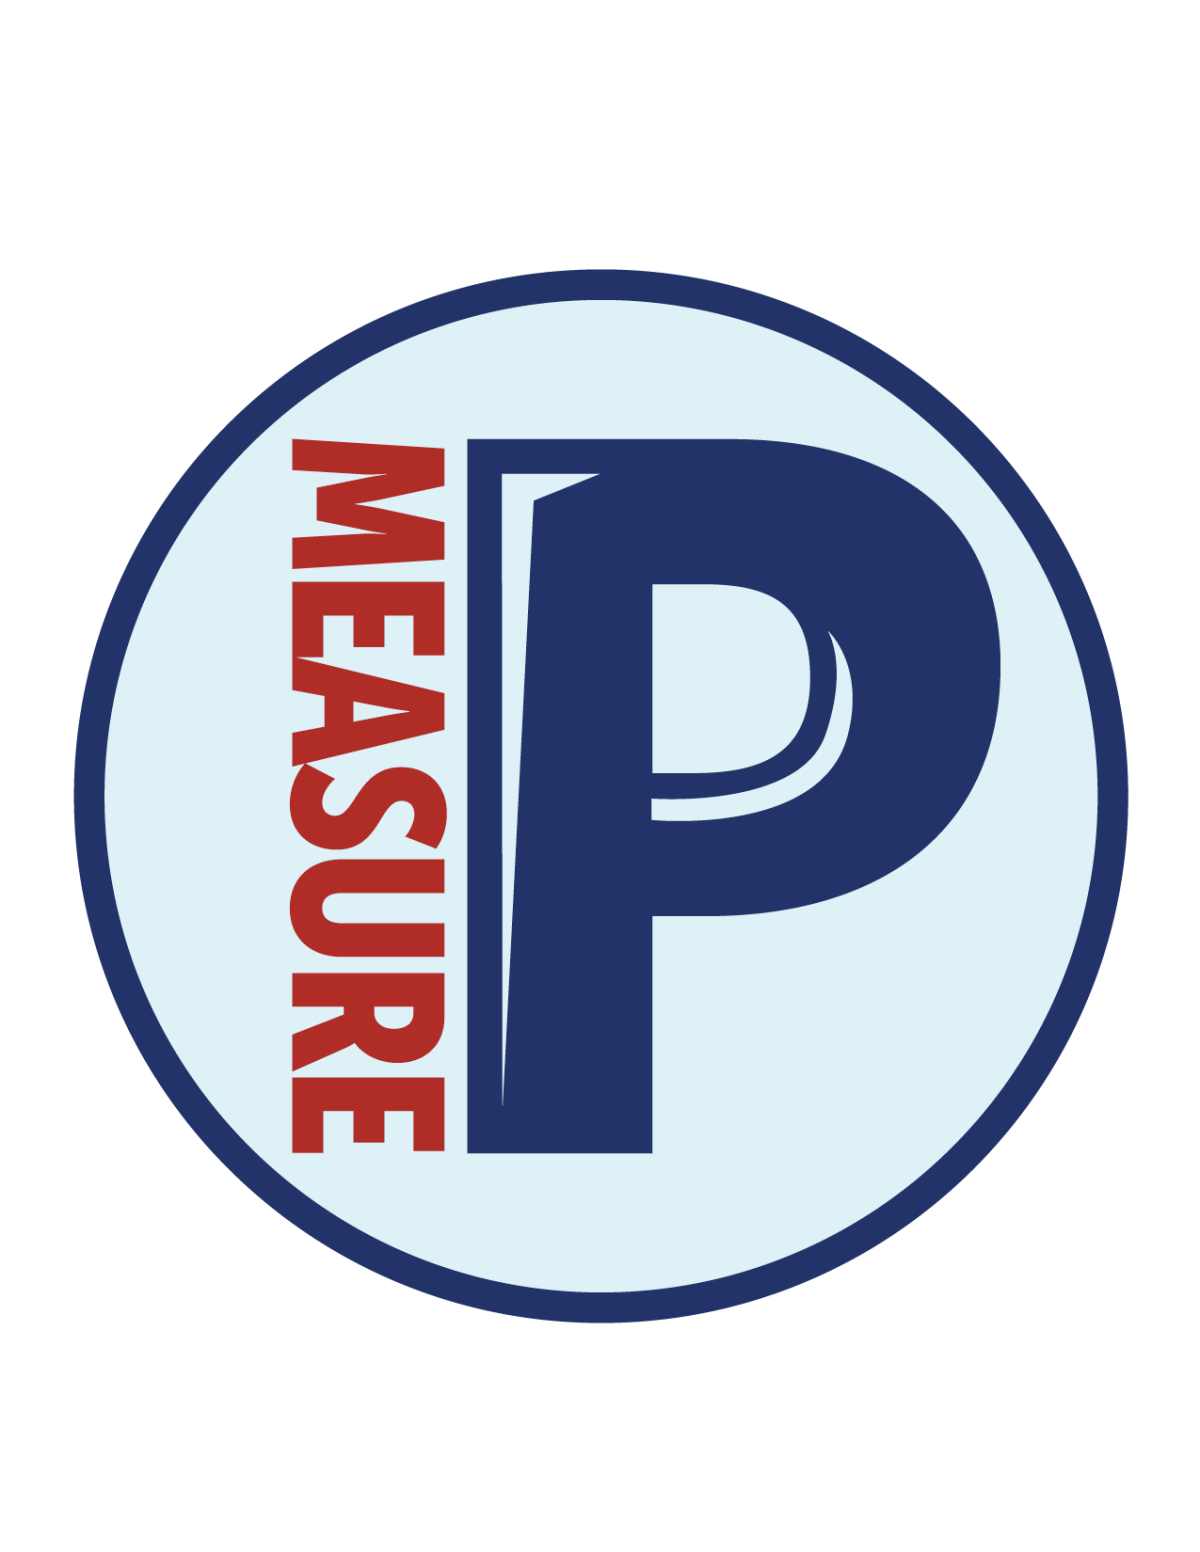 Measure P Icon